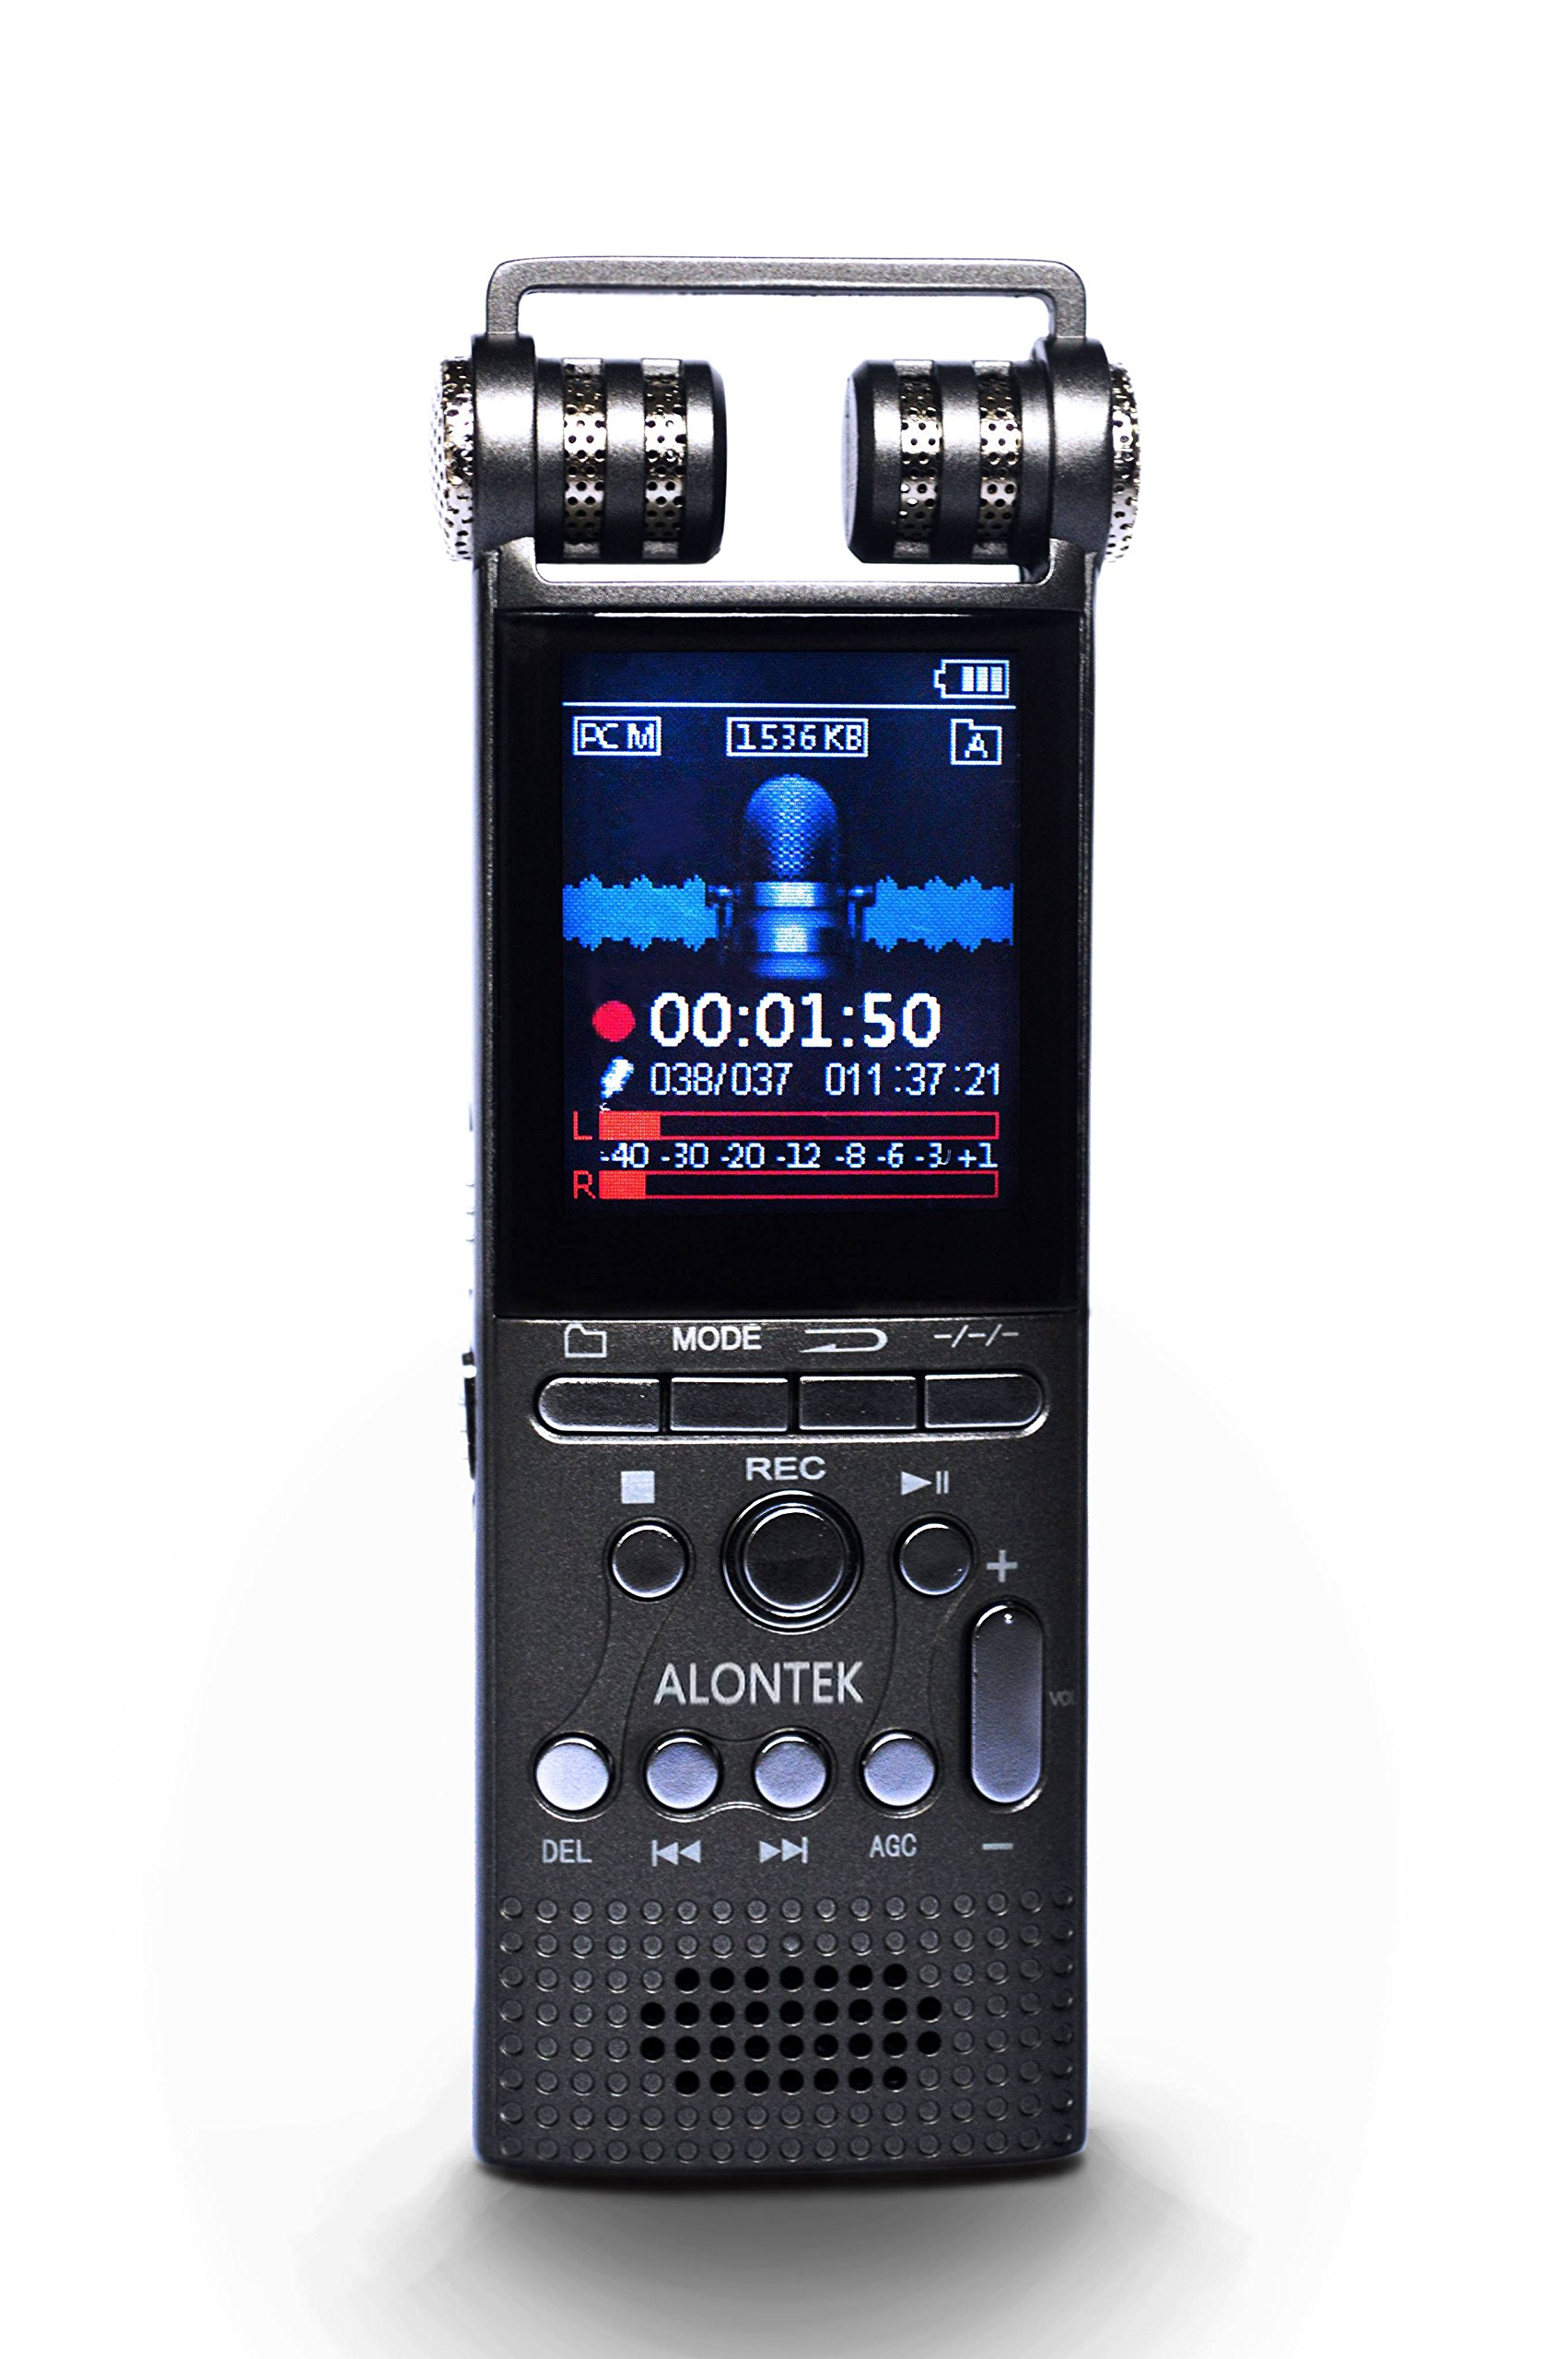 Voice Recorder - Alontek 8GB Rechargeable Digital Audio Dictaphone with Password Protection, Noise Reduction, Professional Phone Call Recorder with TF-Card Slot, MP3 Player